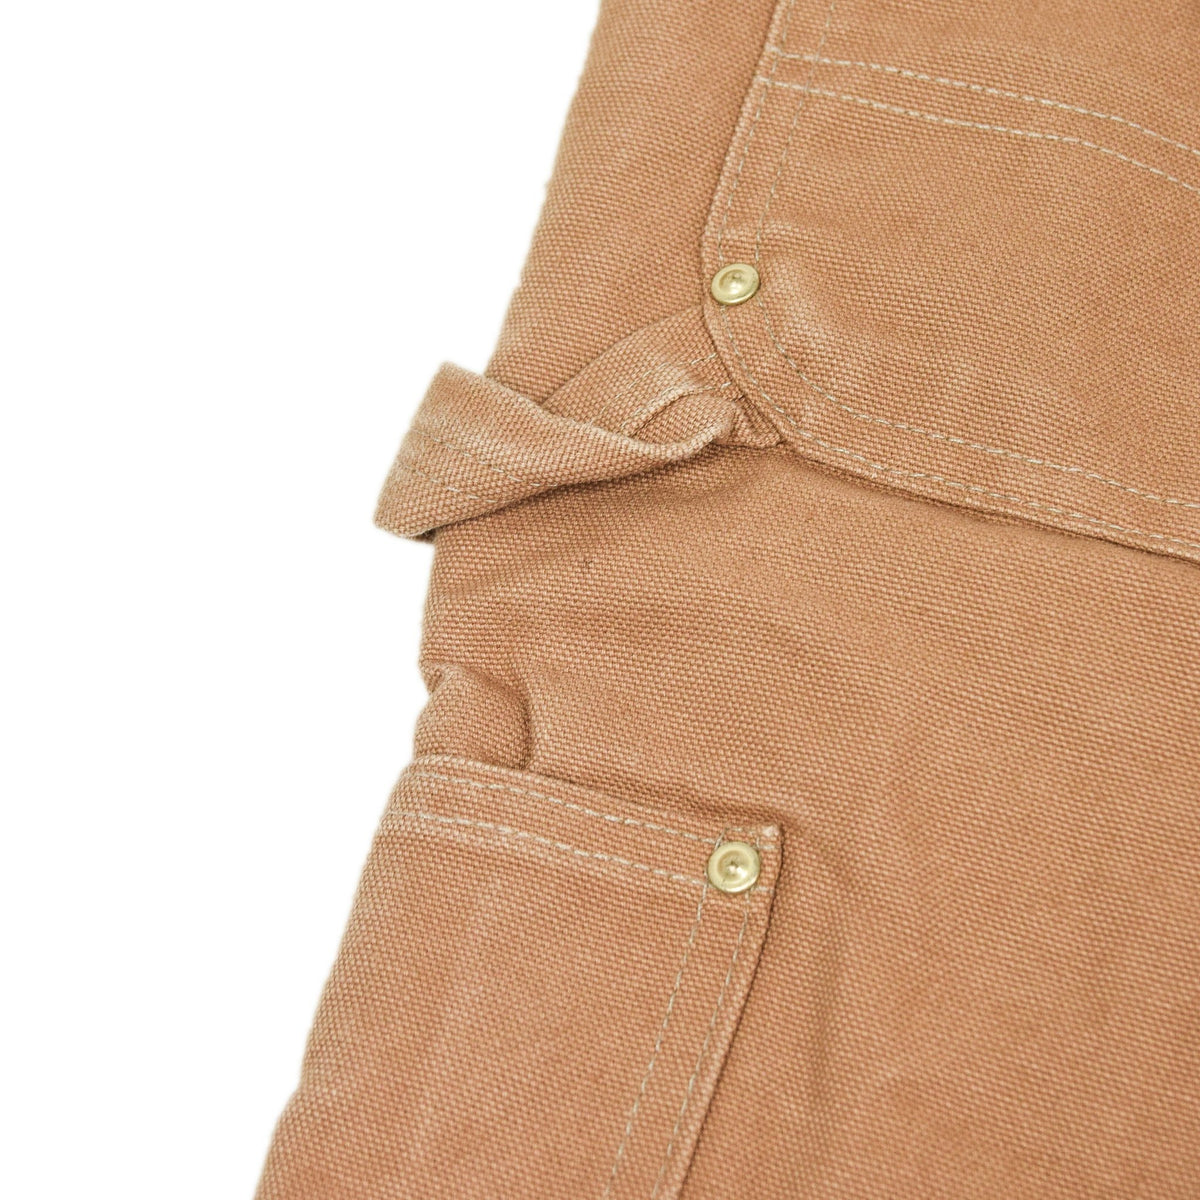 Vintage Carhartt Work Dungarees Tan Brown Duck Canvas Bib Overall Quilt Lined M detail